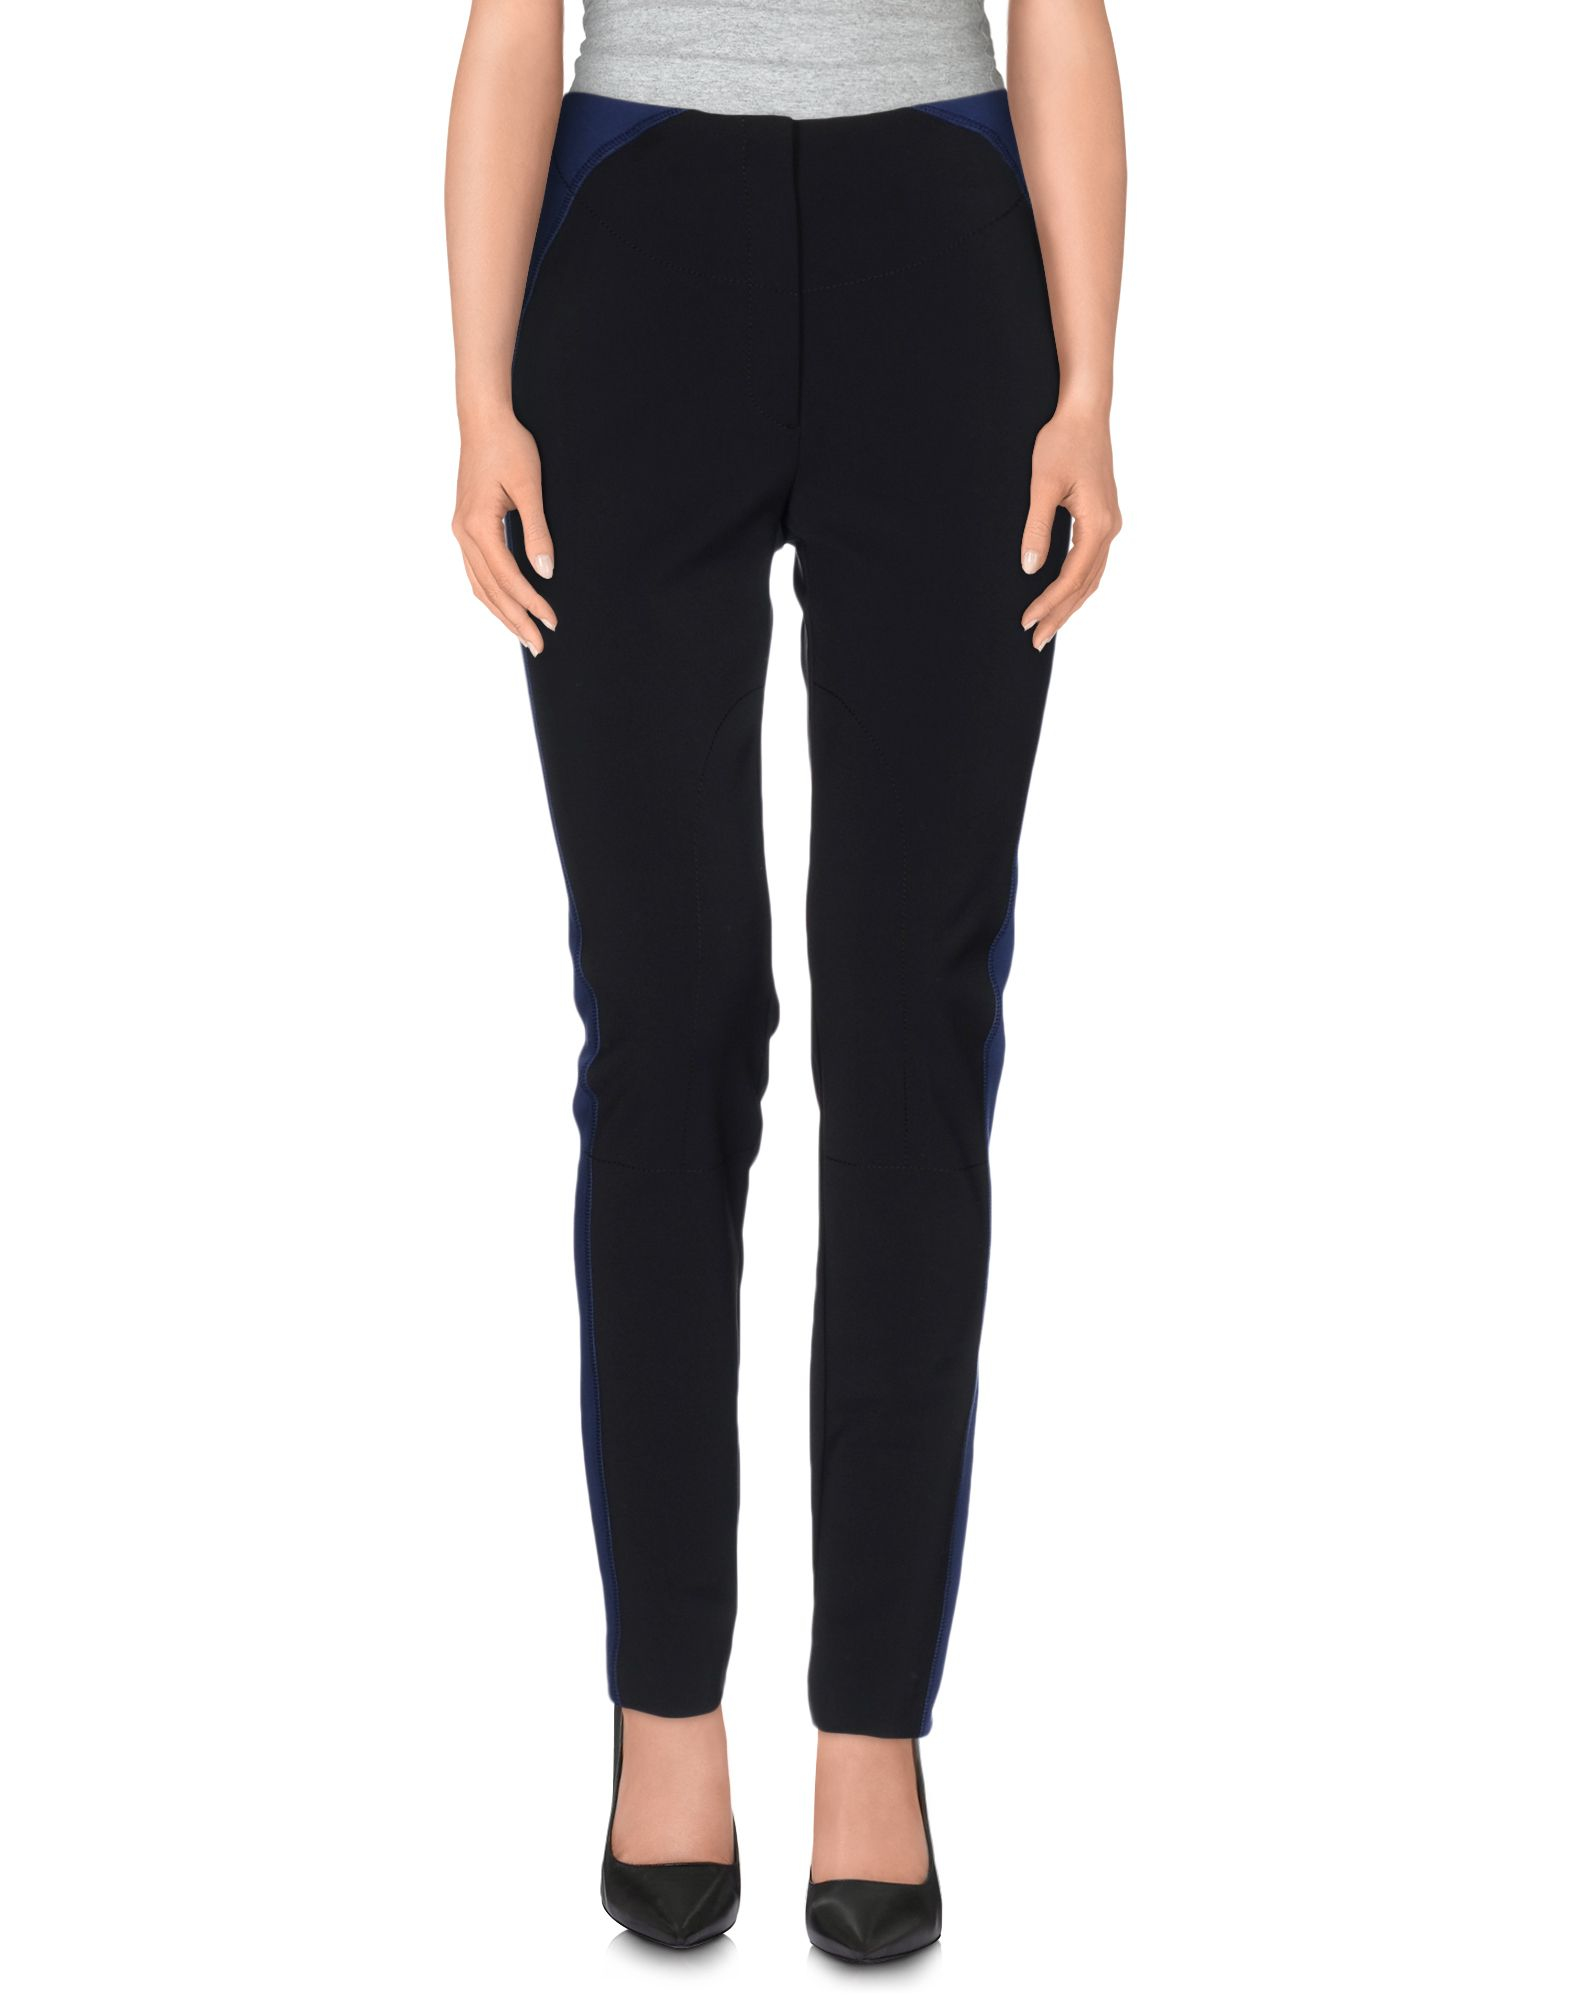 Black jeans seem to get overlooked for the traditional blue denim, yet they are so much more versatile and easy to wear. Black is clean, smart and simple to style. When looking at what to wear with black jeans, men can go from the pub to the clubs, and then out to lunch the next day.